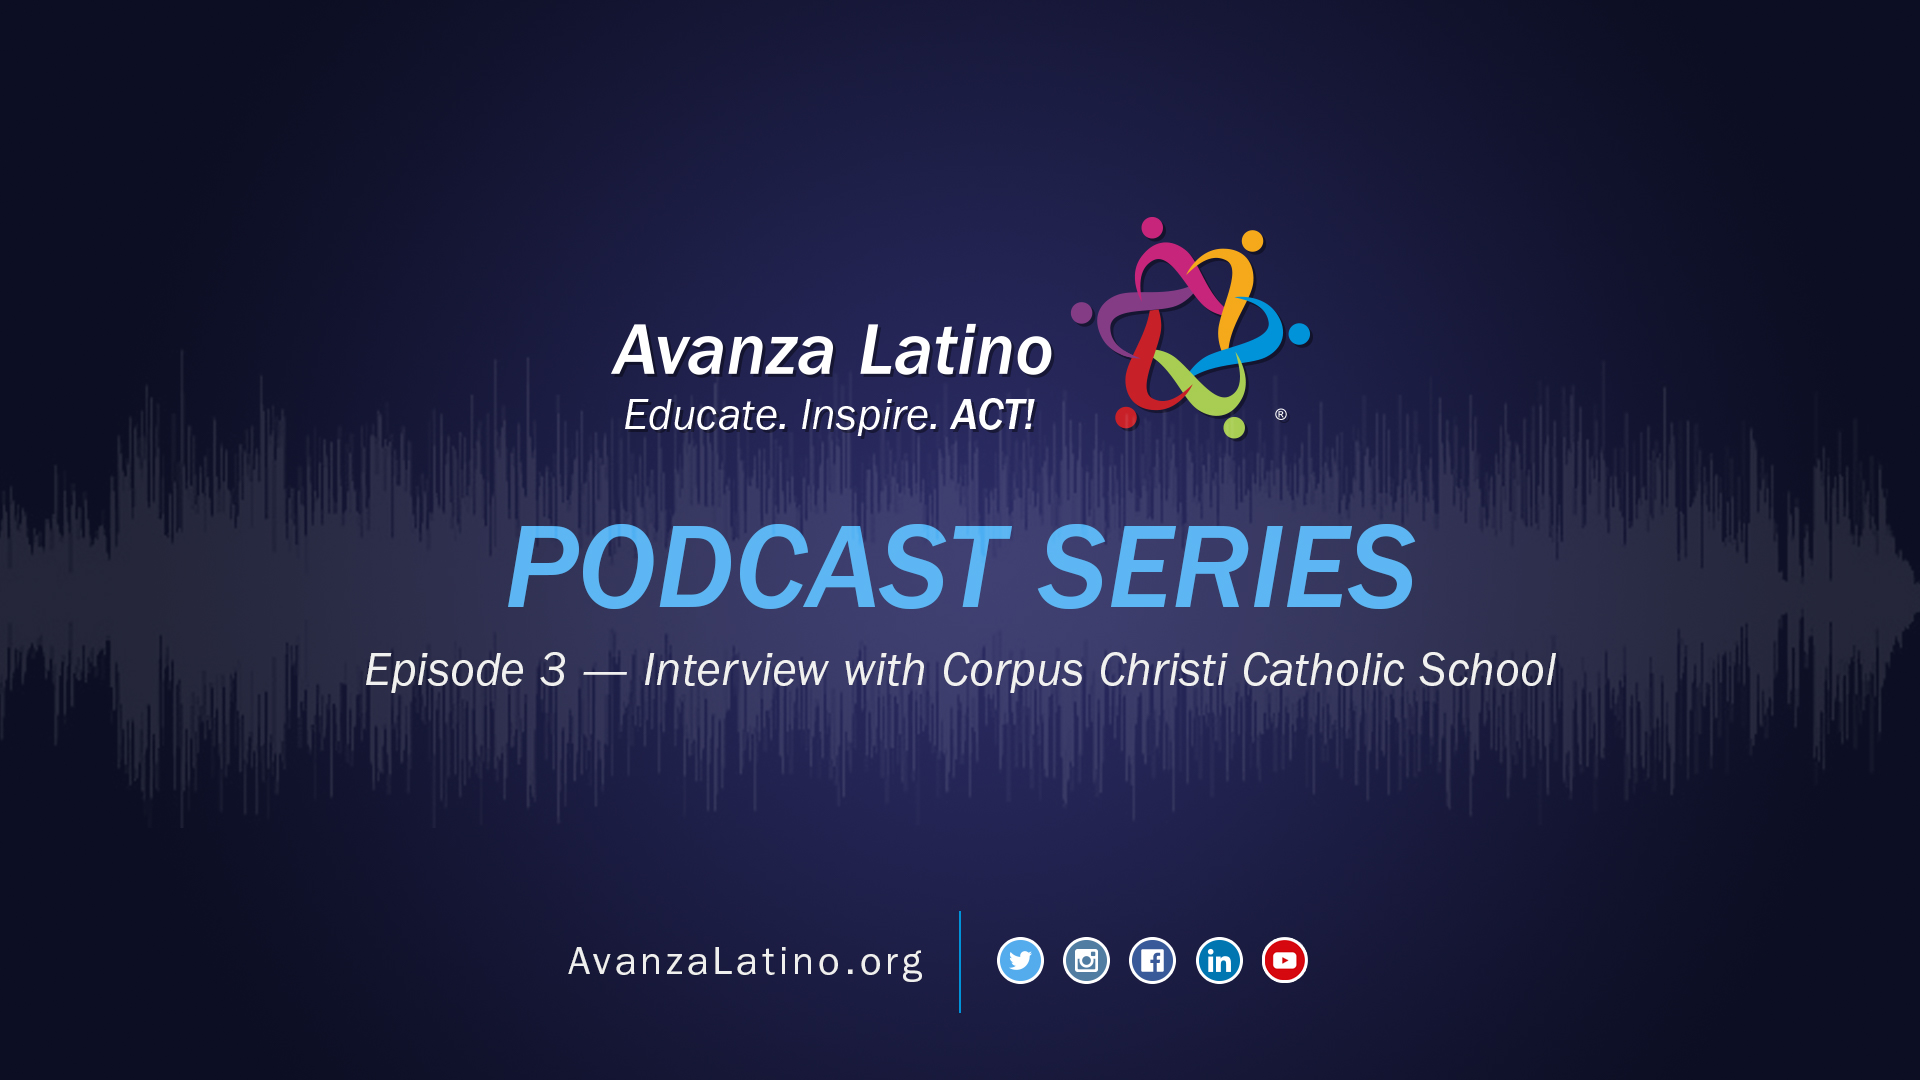 Avanza Latino Podcast: Interview with Corpus Christi Catholic School Principal and Teachers